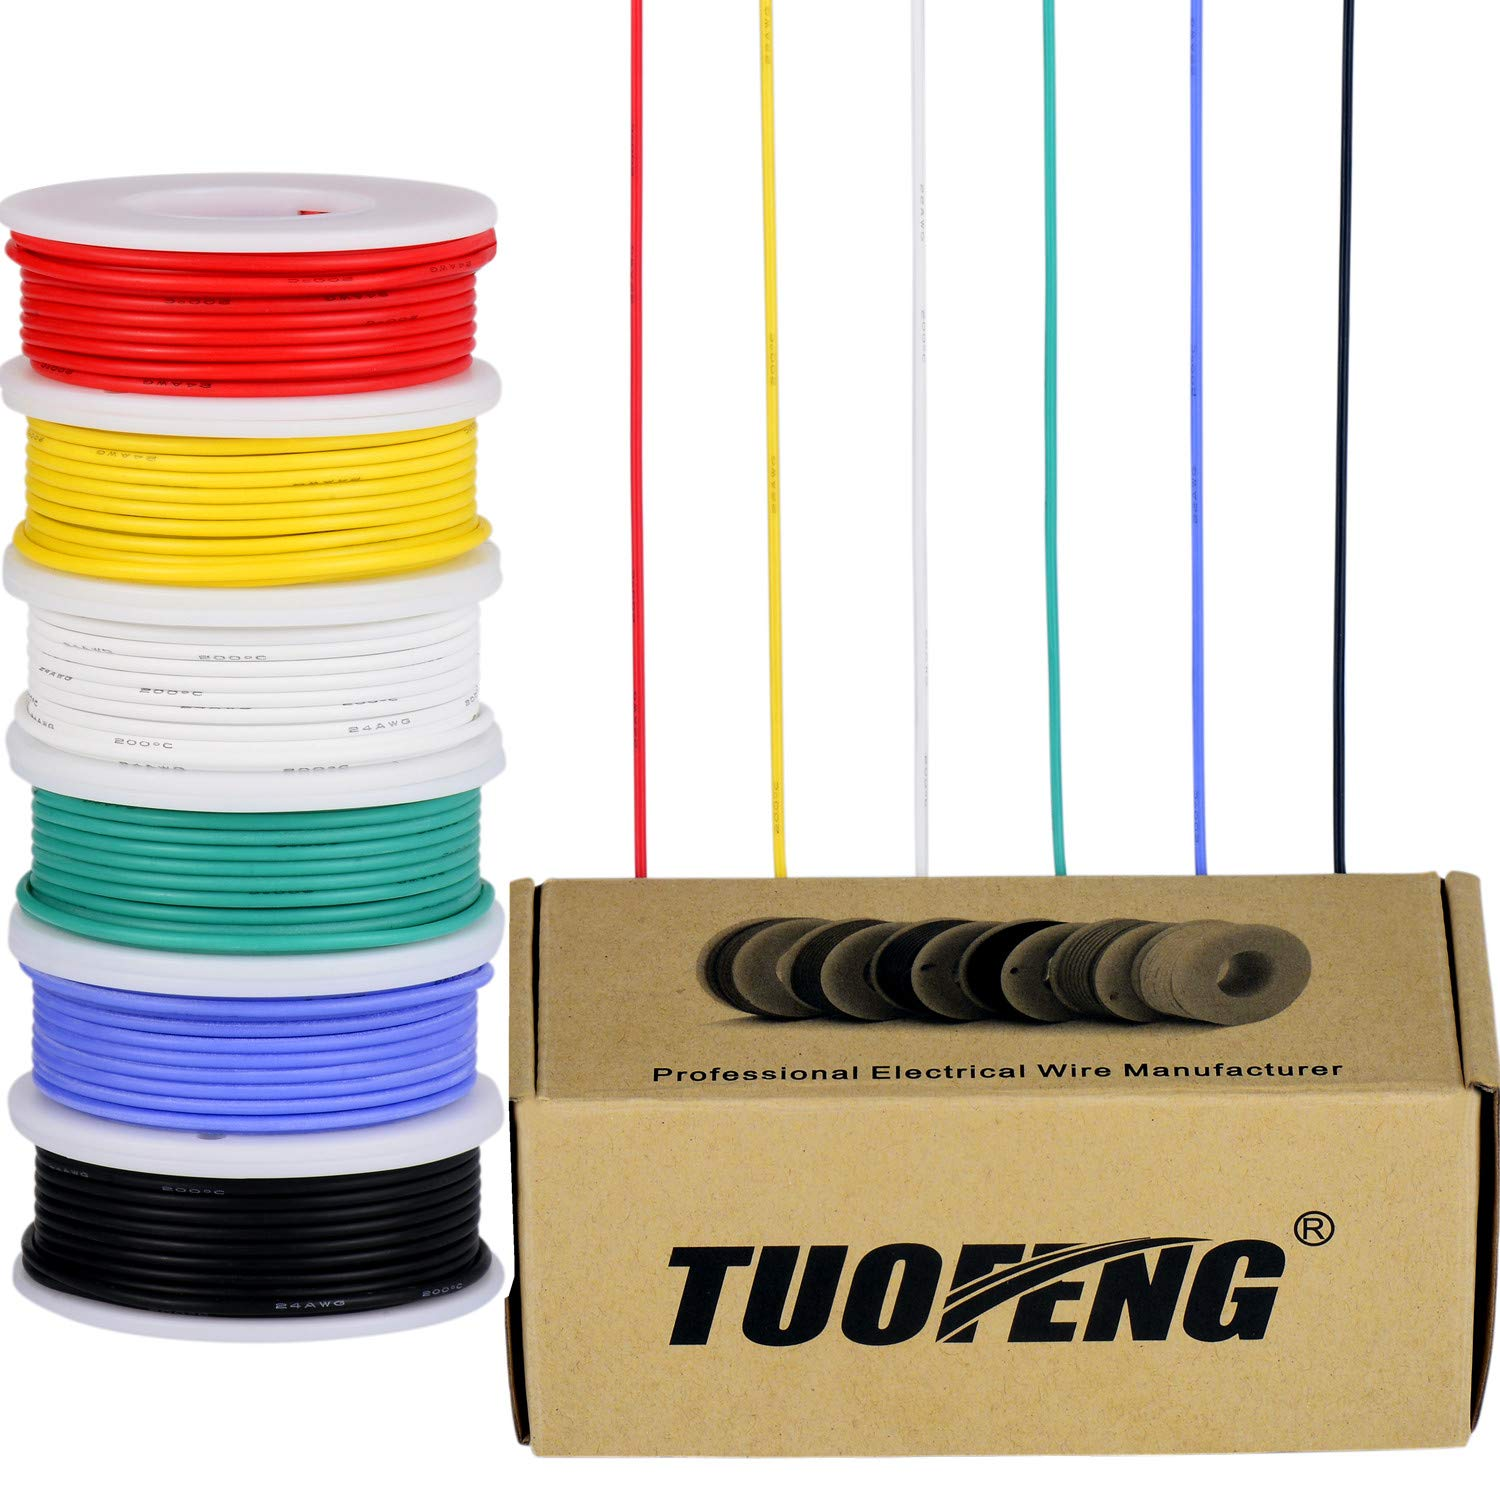 22 gauge electric wire, tinned copper wire kit 22 awg flexible